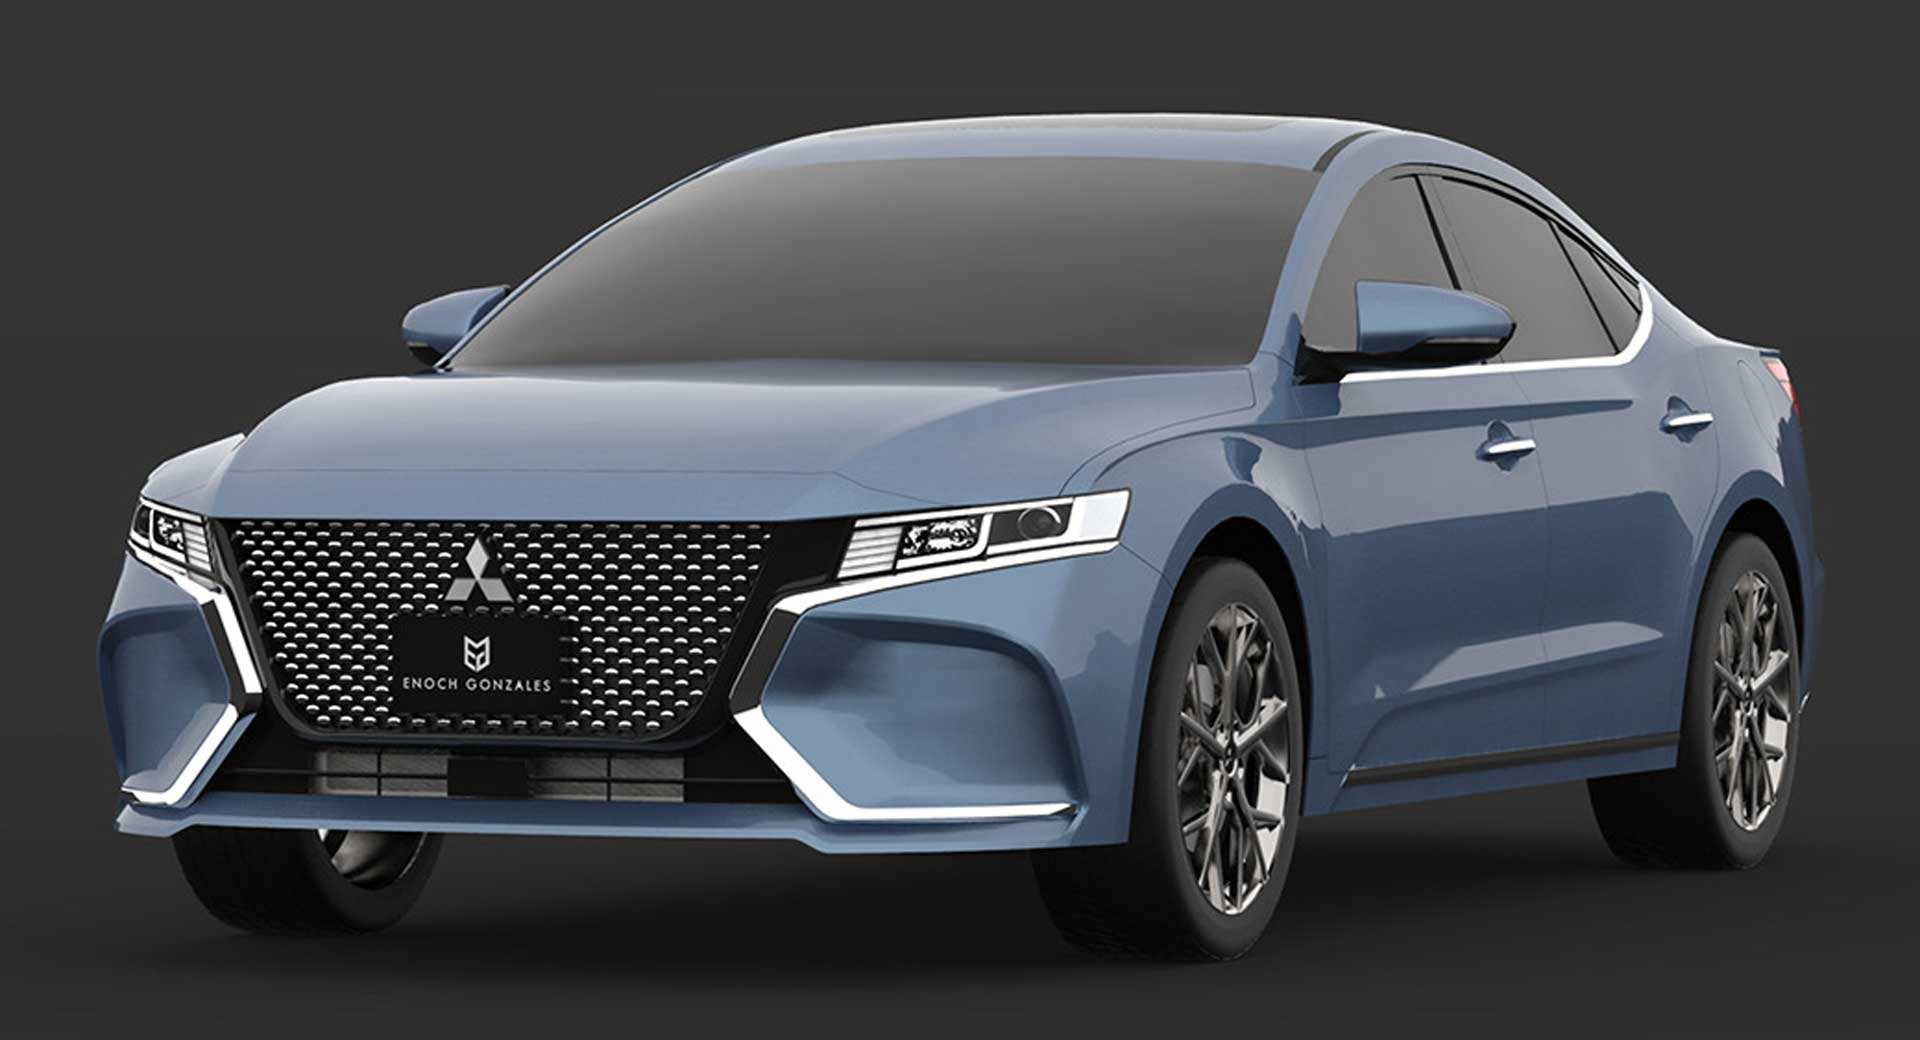 43 Concept of 2020 Mitsubishi Galant Performance and New Engine by 2020 Mitsubishi Galant